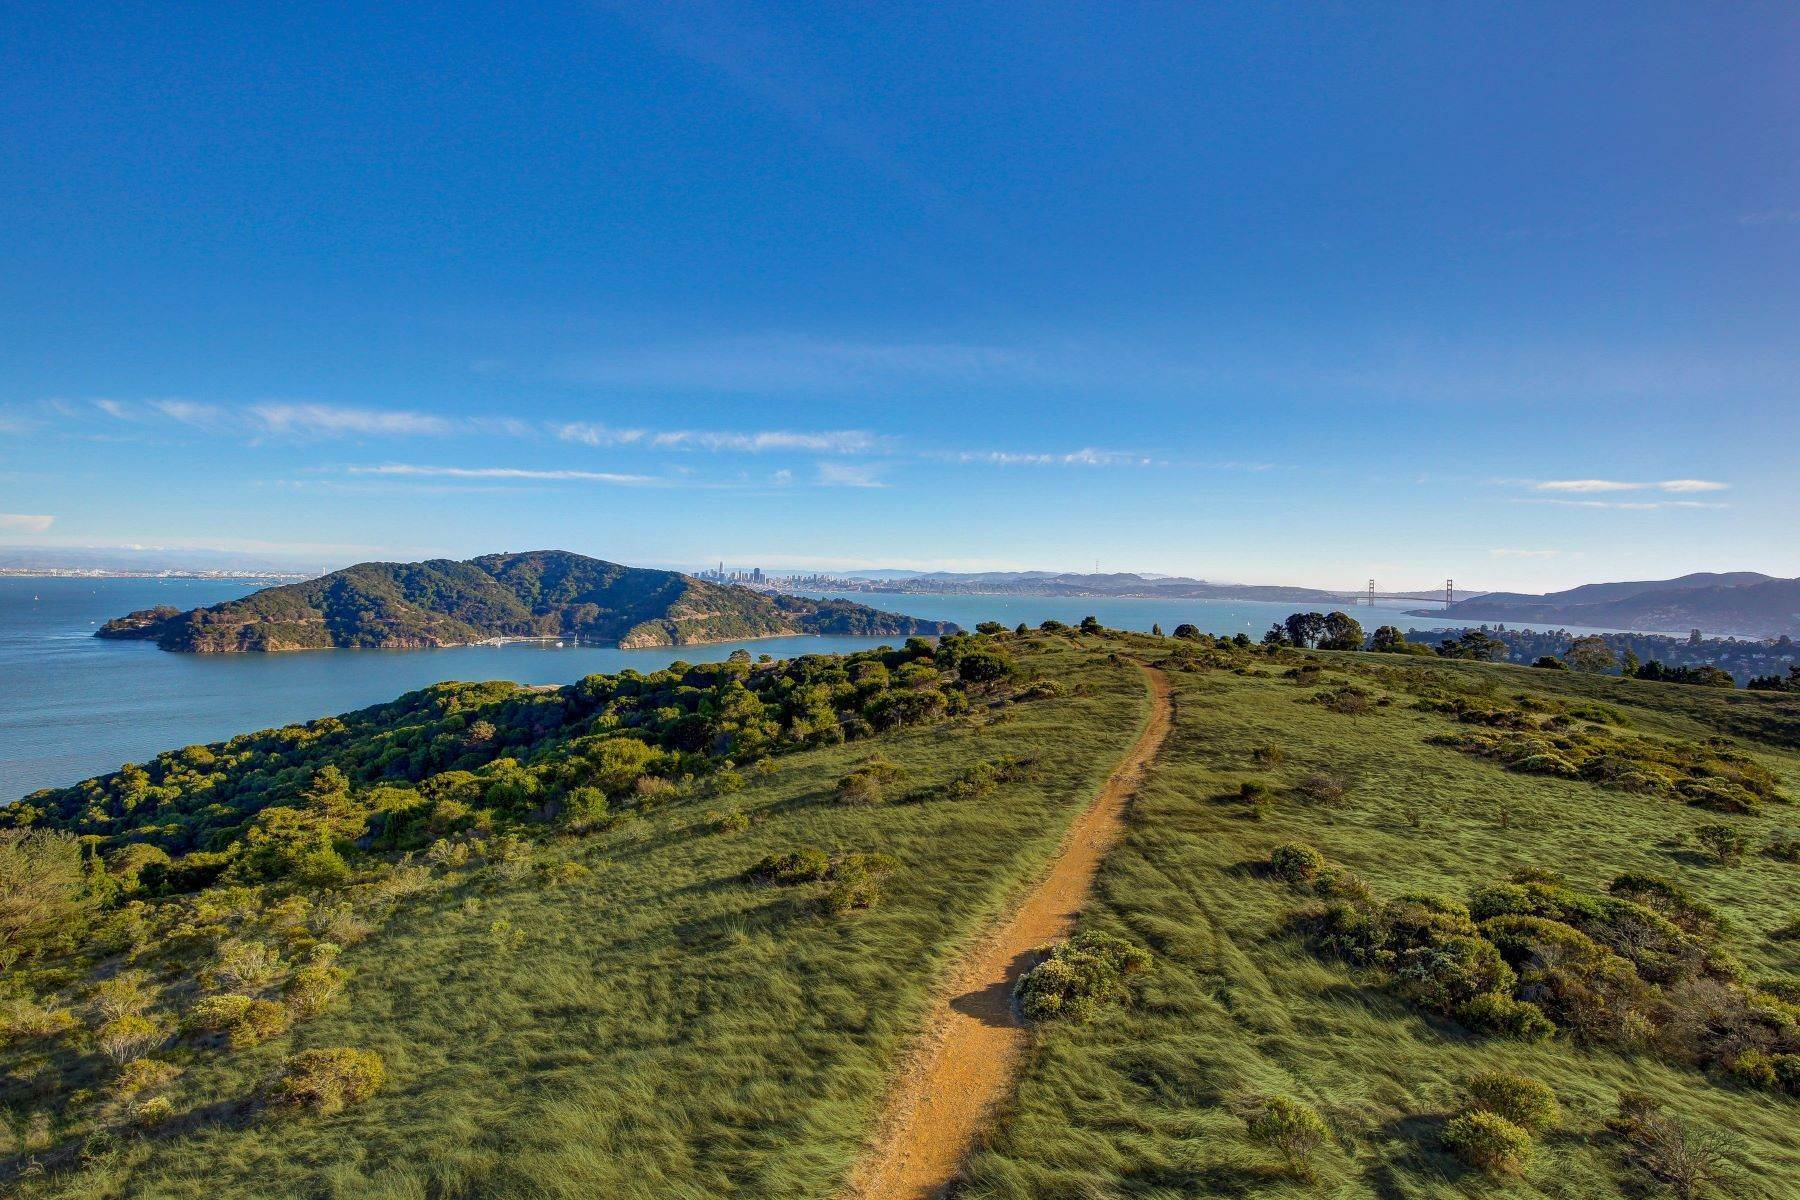 Property for Sale at Easton Point Tiburon, California 94920 United States